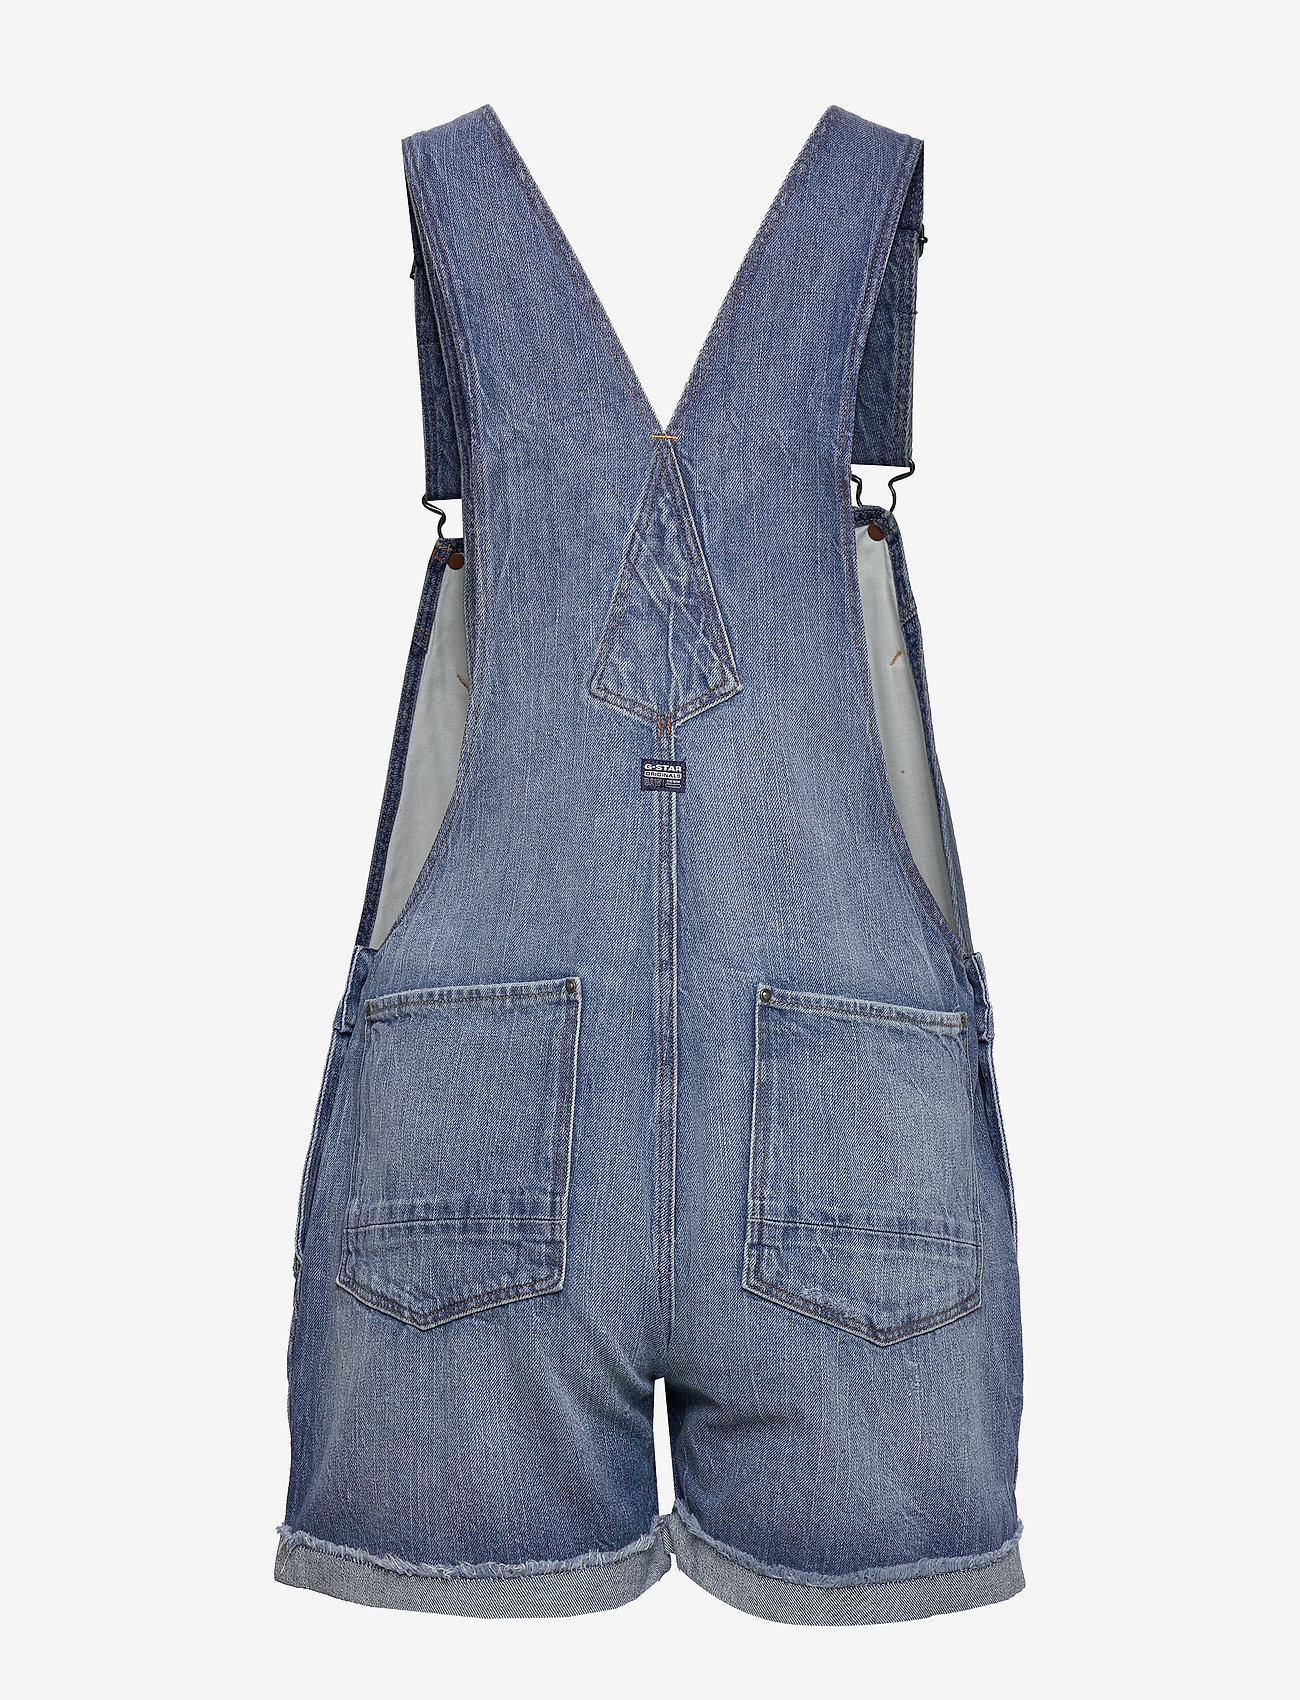 G-star RAW - Faeroes bf Short Overall rp tu Wmn - buksedragter - faded ripped shore - 1